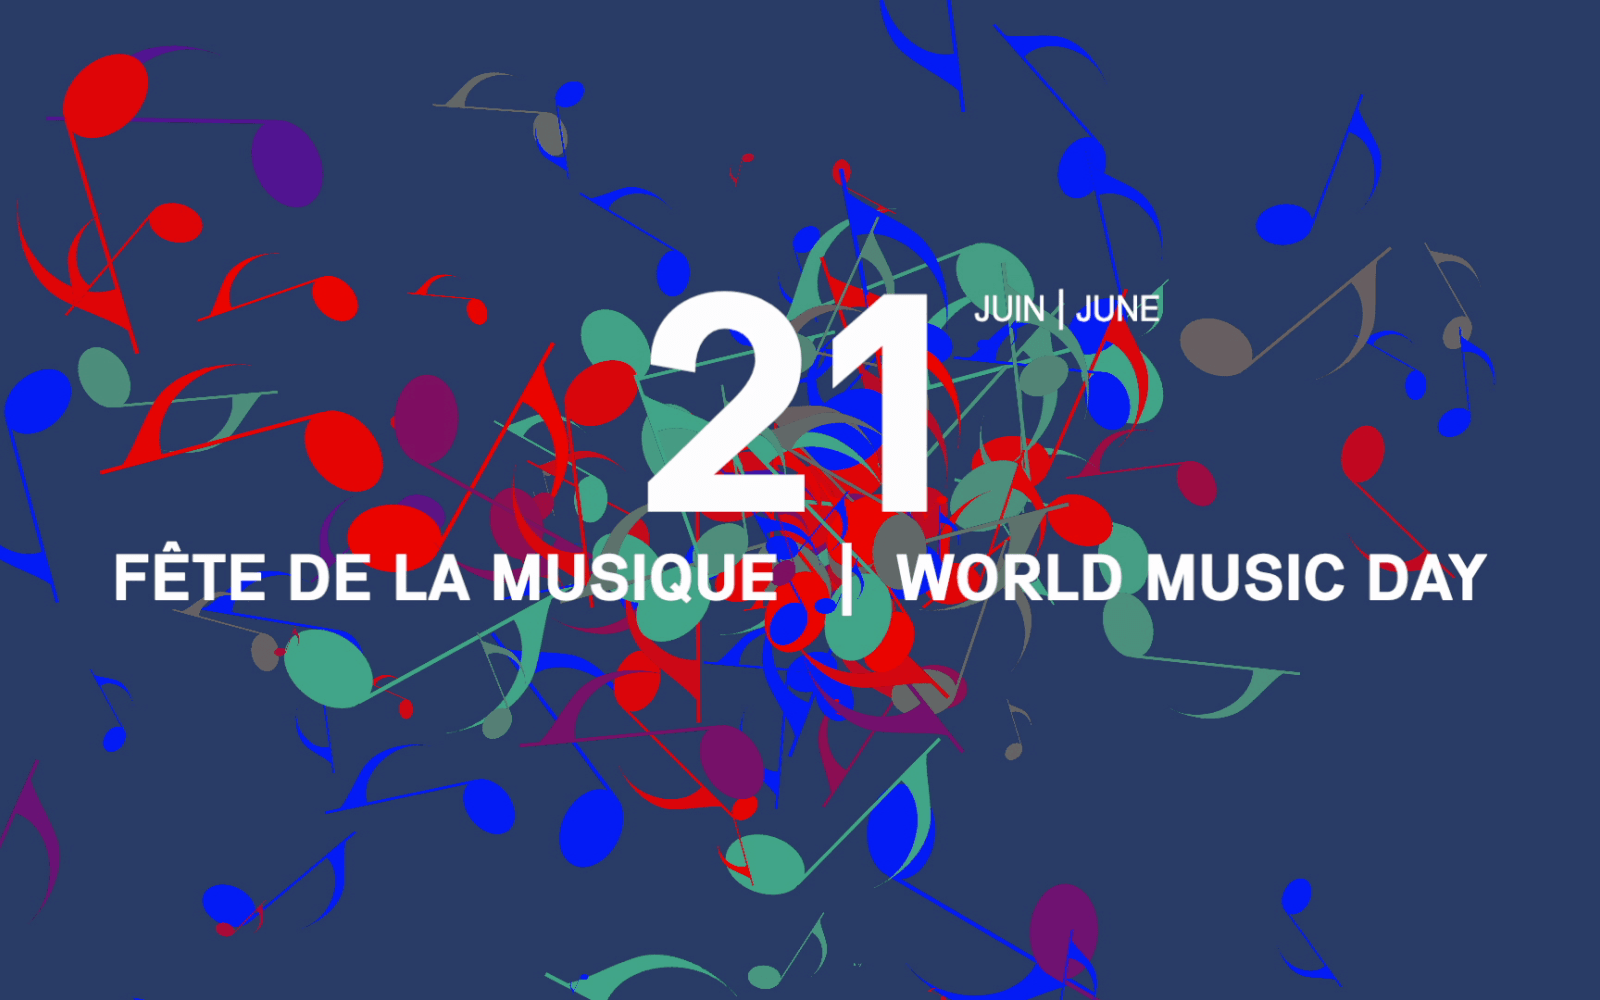 World Music Day - 21st June, 2020 - History, Significance and Virtual Concerts!